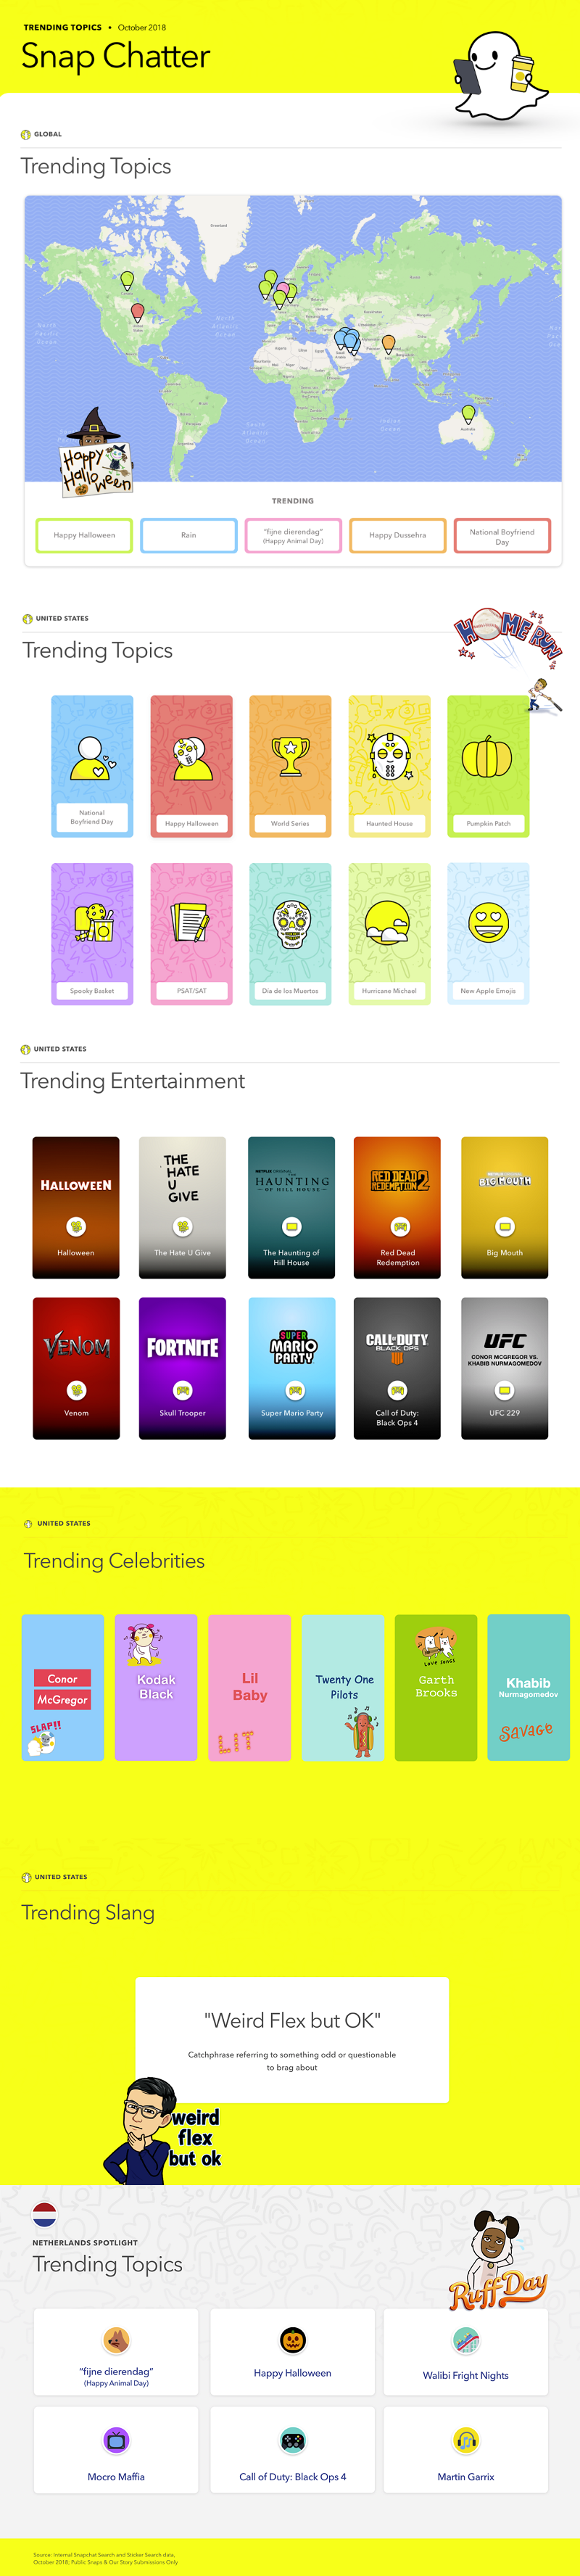 Infographic looks at key discussion trends on Snapchat